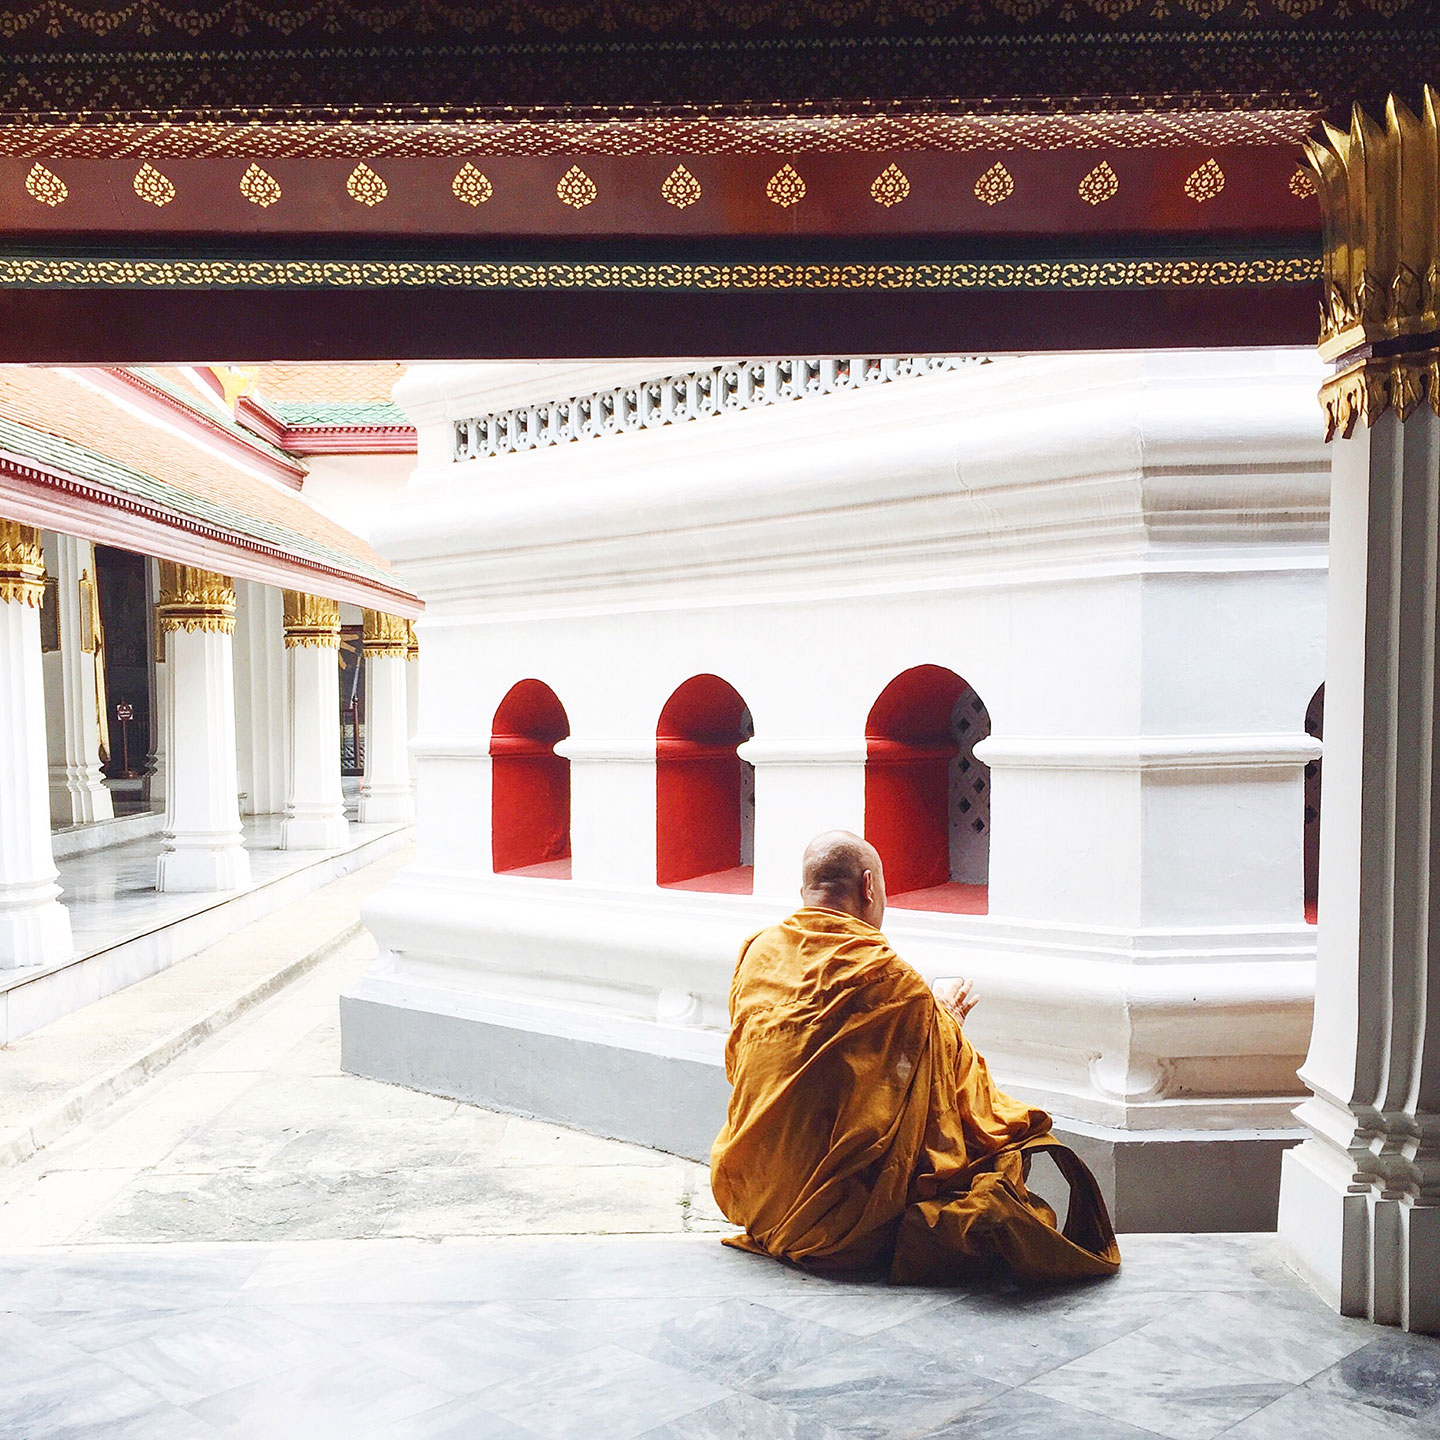 Old and new collide as this monk dressed in traditional Buddhist robes spends time on his iPhone.